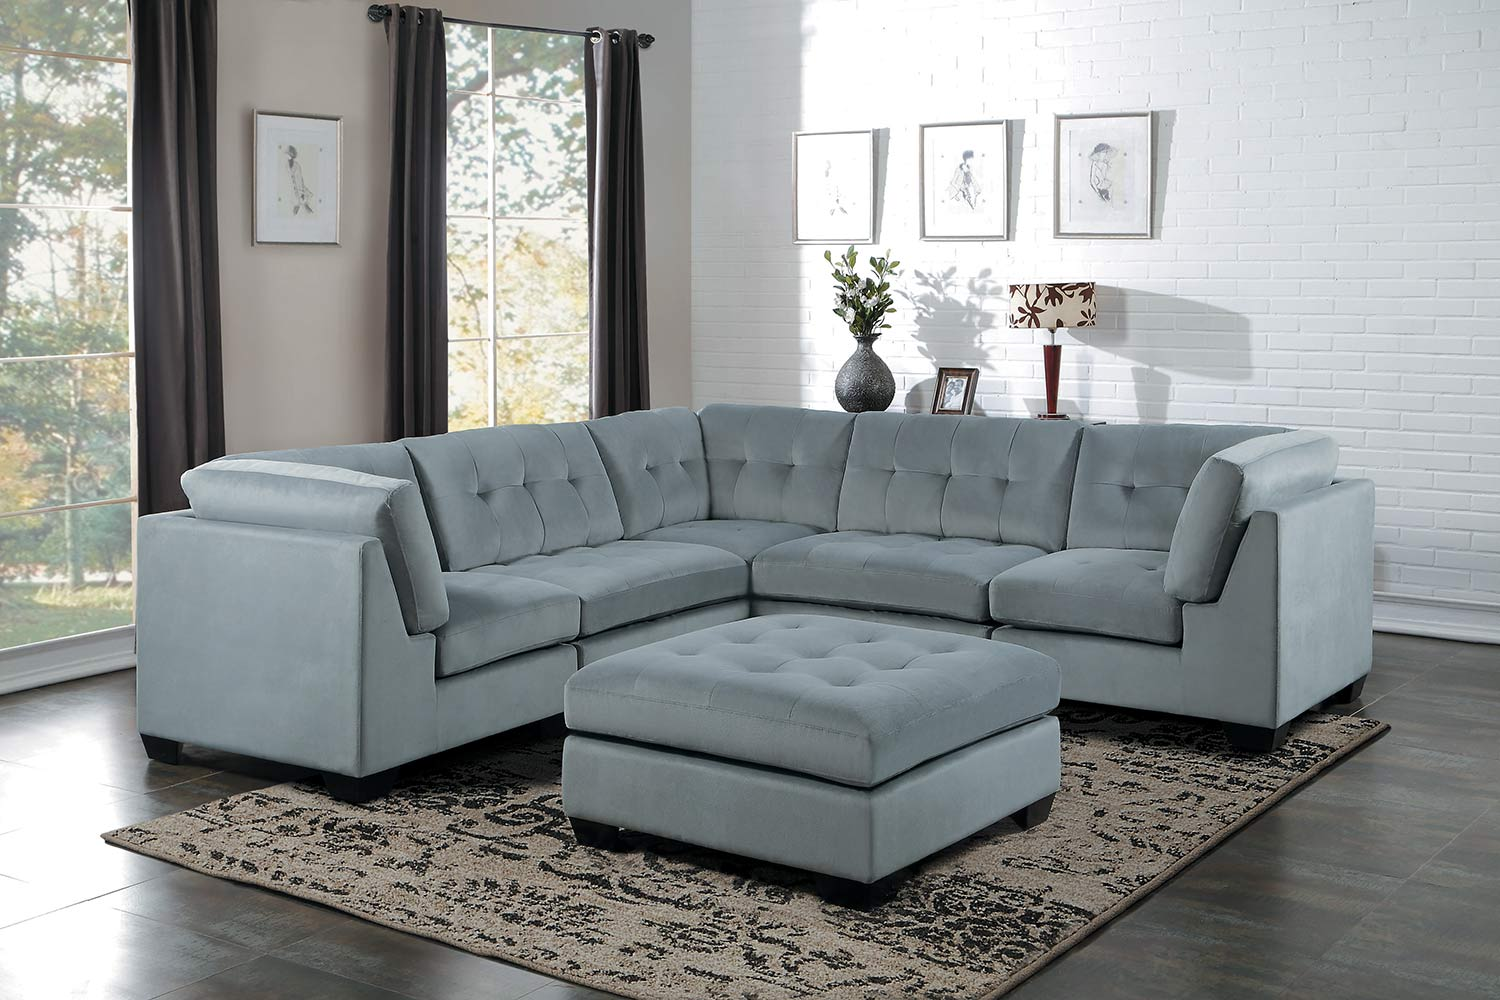 dark gray sectional sofa with collection also fabulous charcoal chaise lounge images design venetian homelegance savarin sectional sofa set light gray fabric 12312